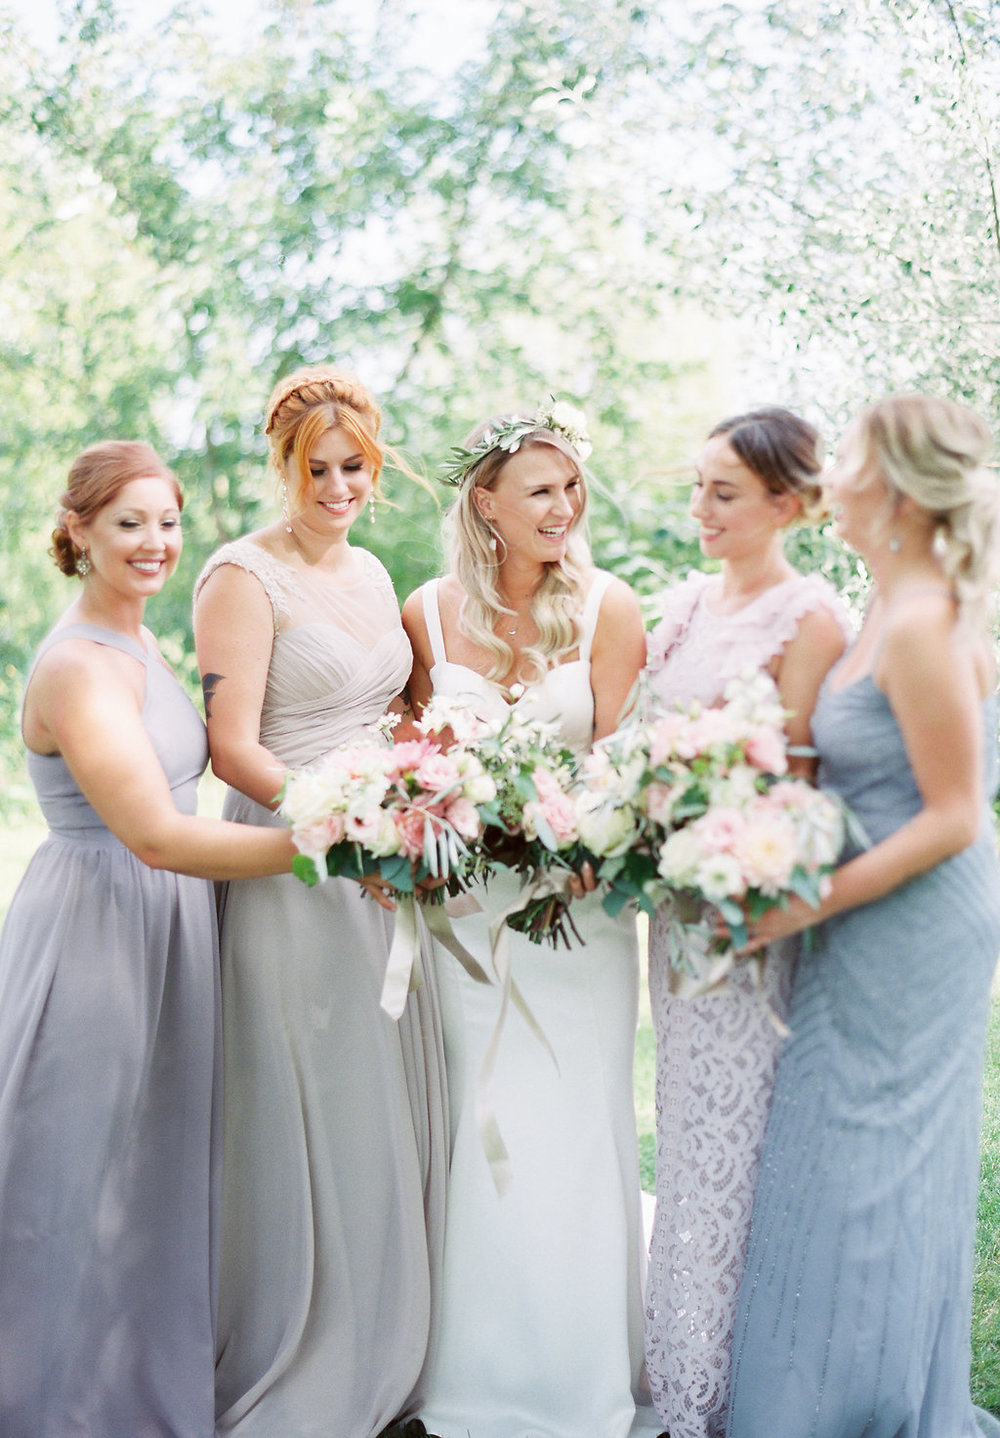 Mismatched Bridesmaid Dresses - Unicorn Wedding Ideas